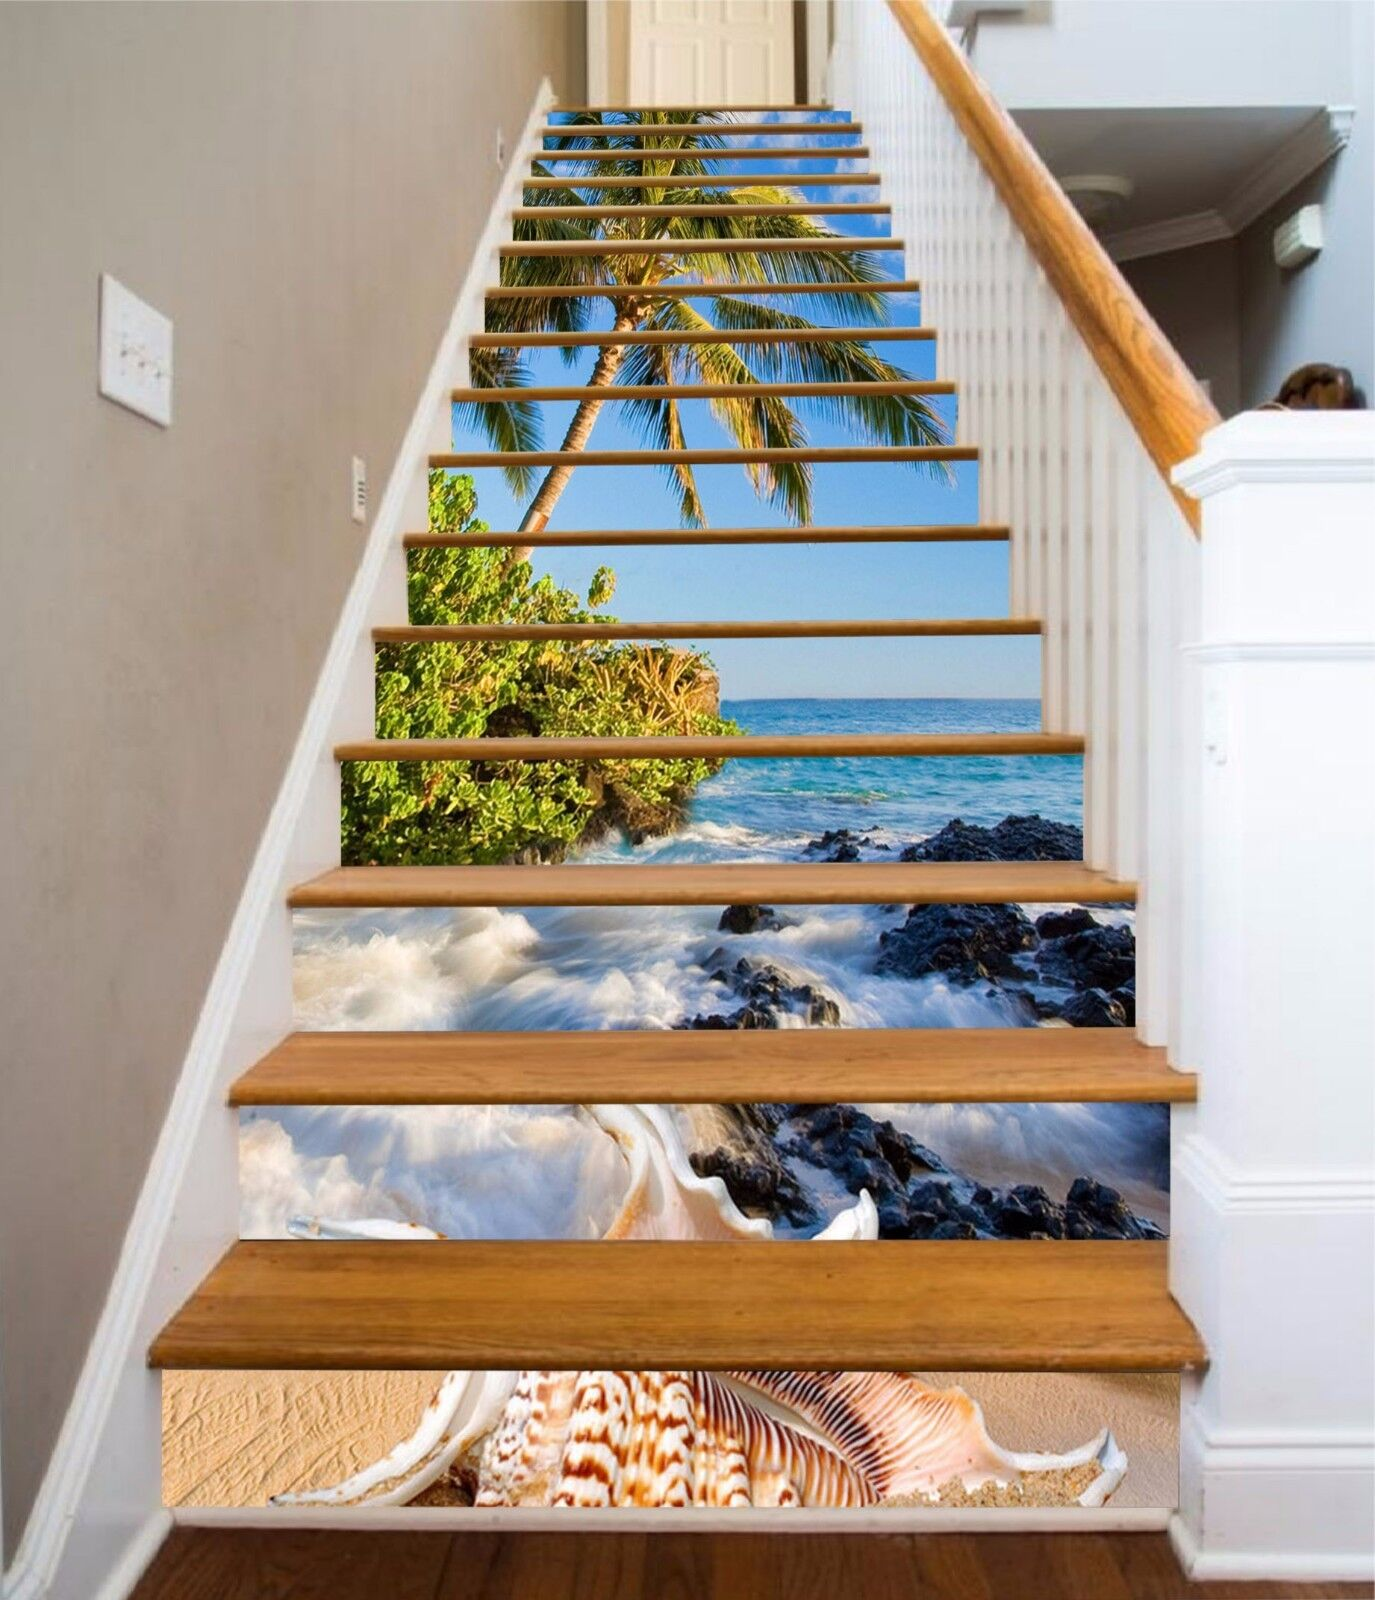 3D Beach Tree 7255 Stair Risers Decoration Photo Mural Vinyl Decal WandPapier AU